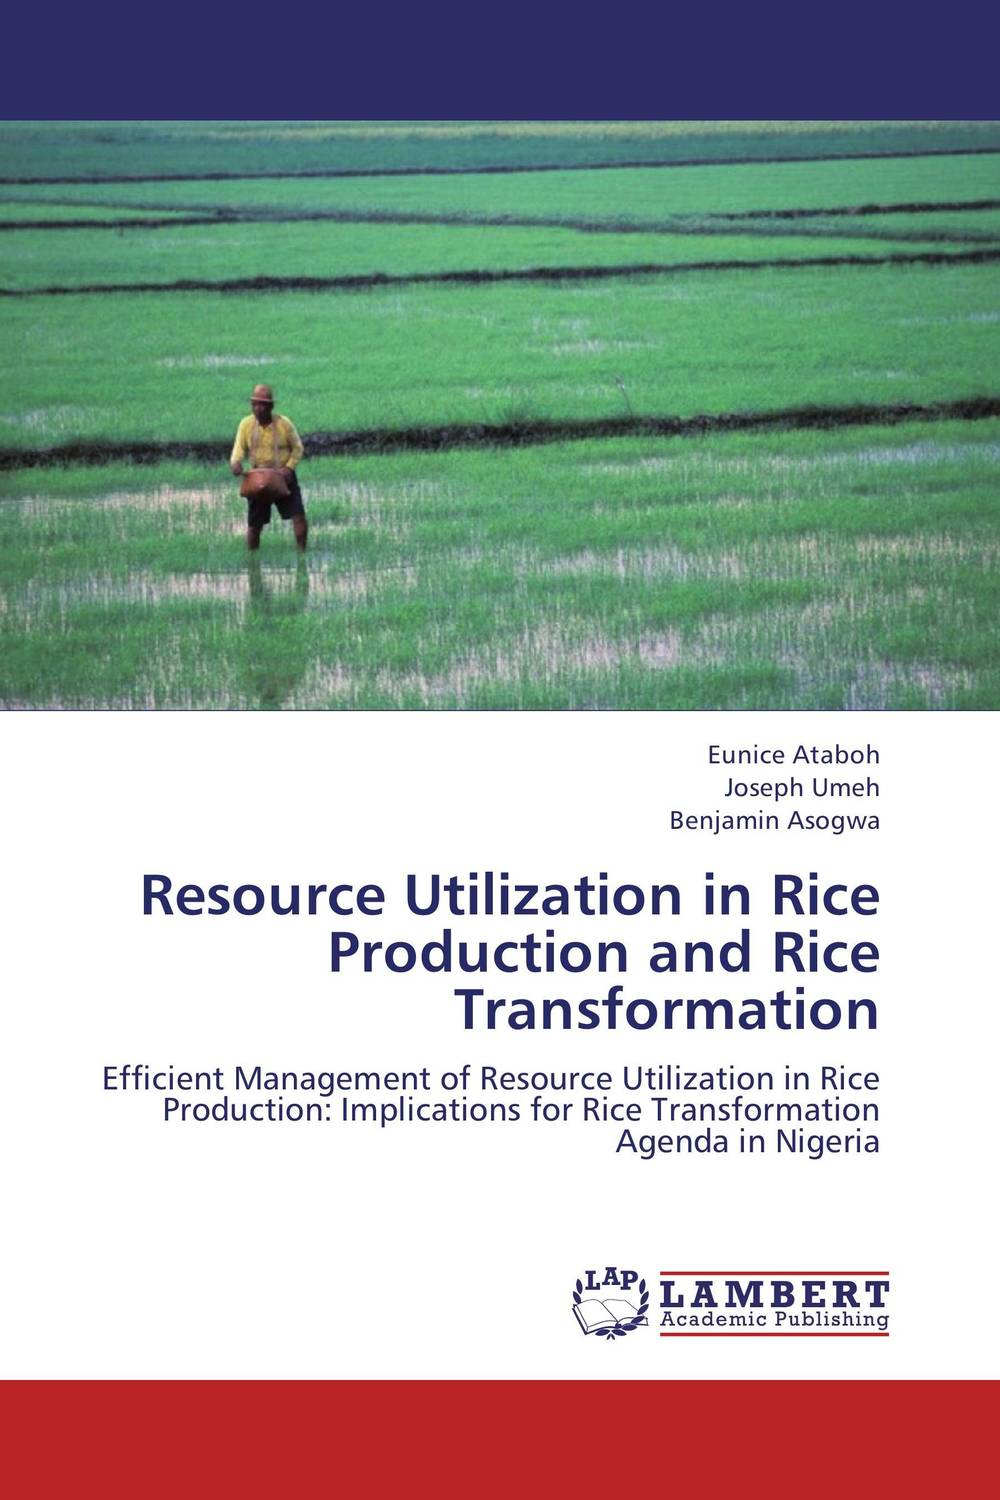 Resource Utilization in Rice Production and Rice Transformation matthew oluwasanmi sedowo rice production in the tropics a panacea for poverty and hunger